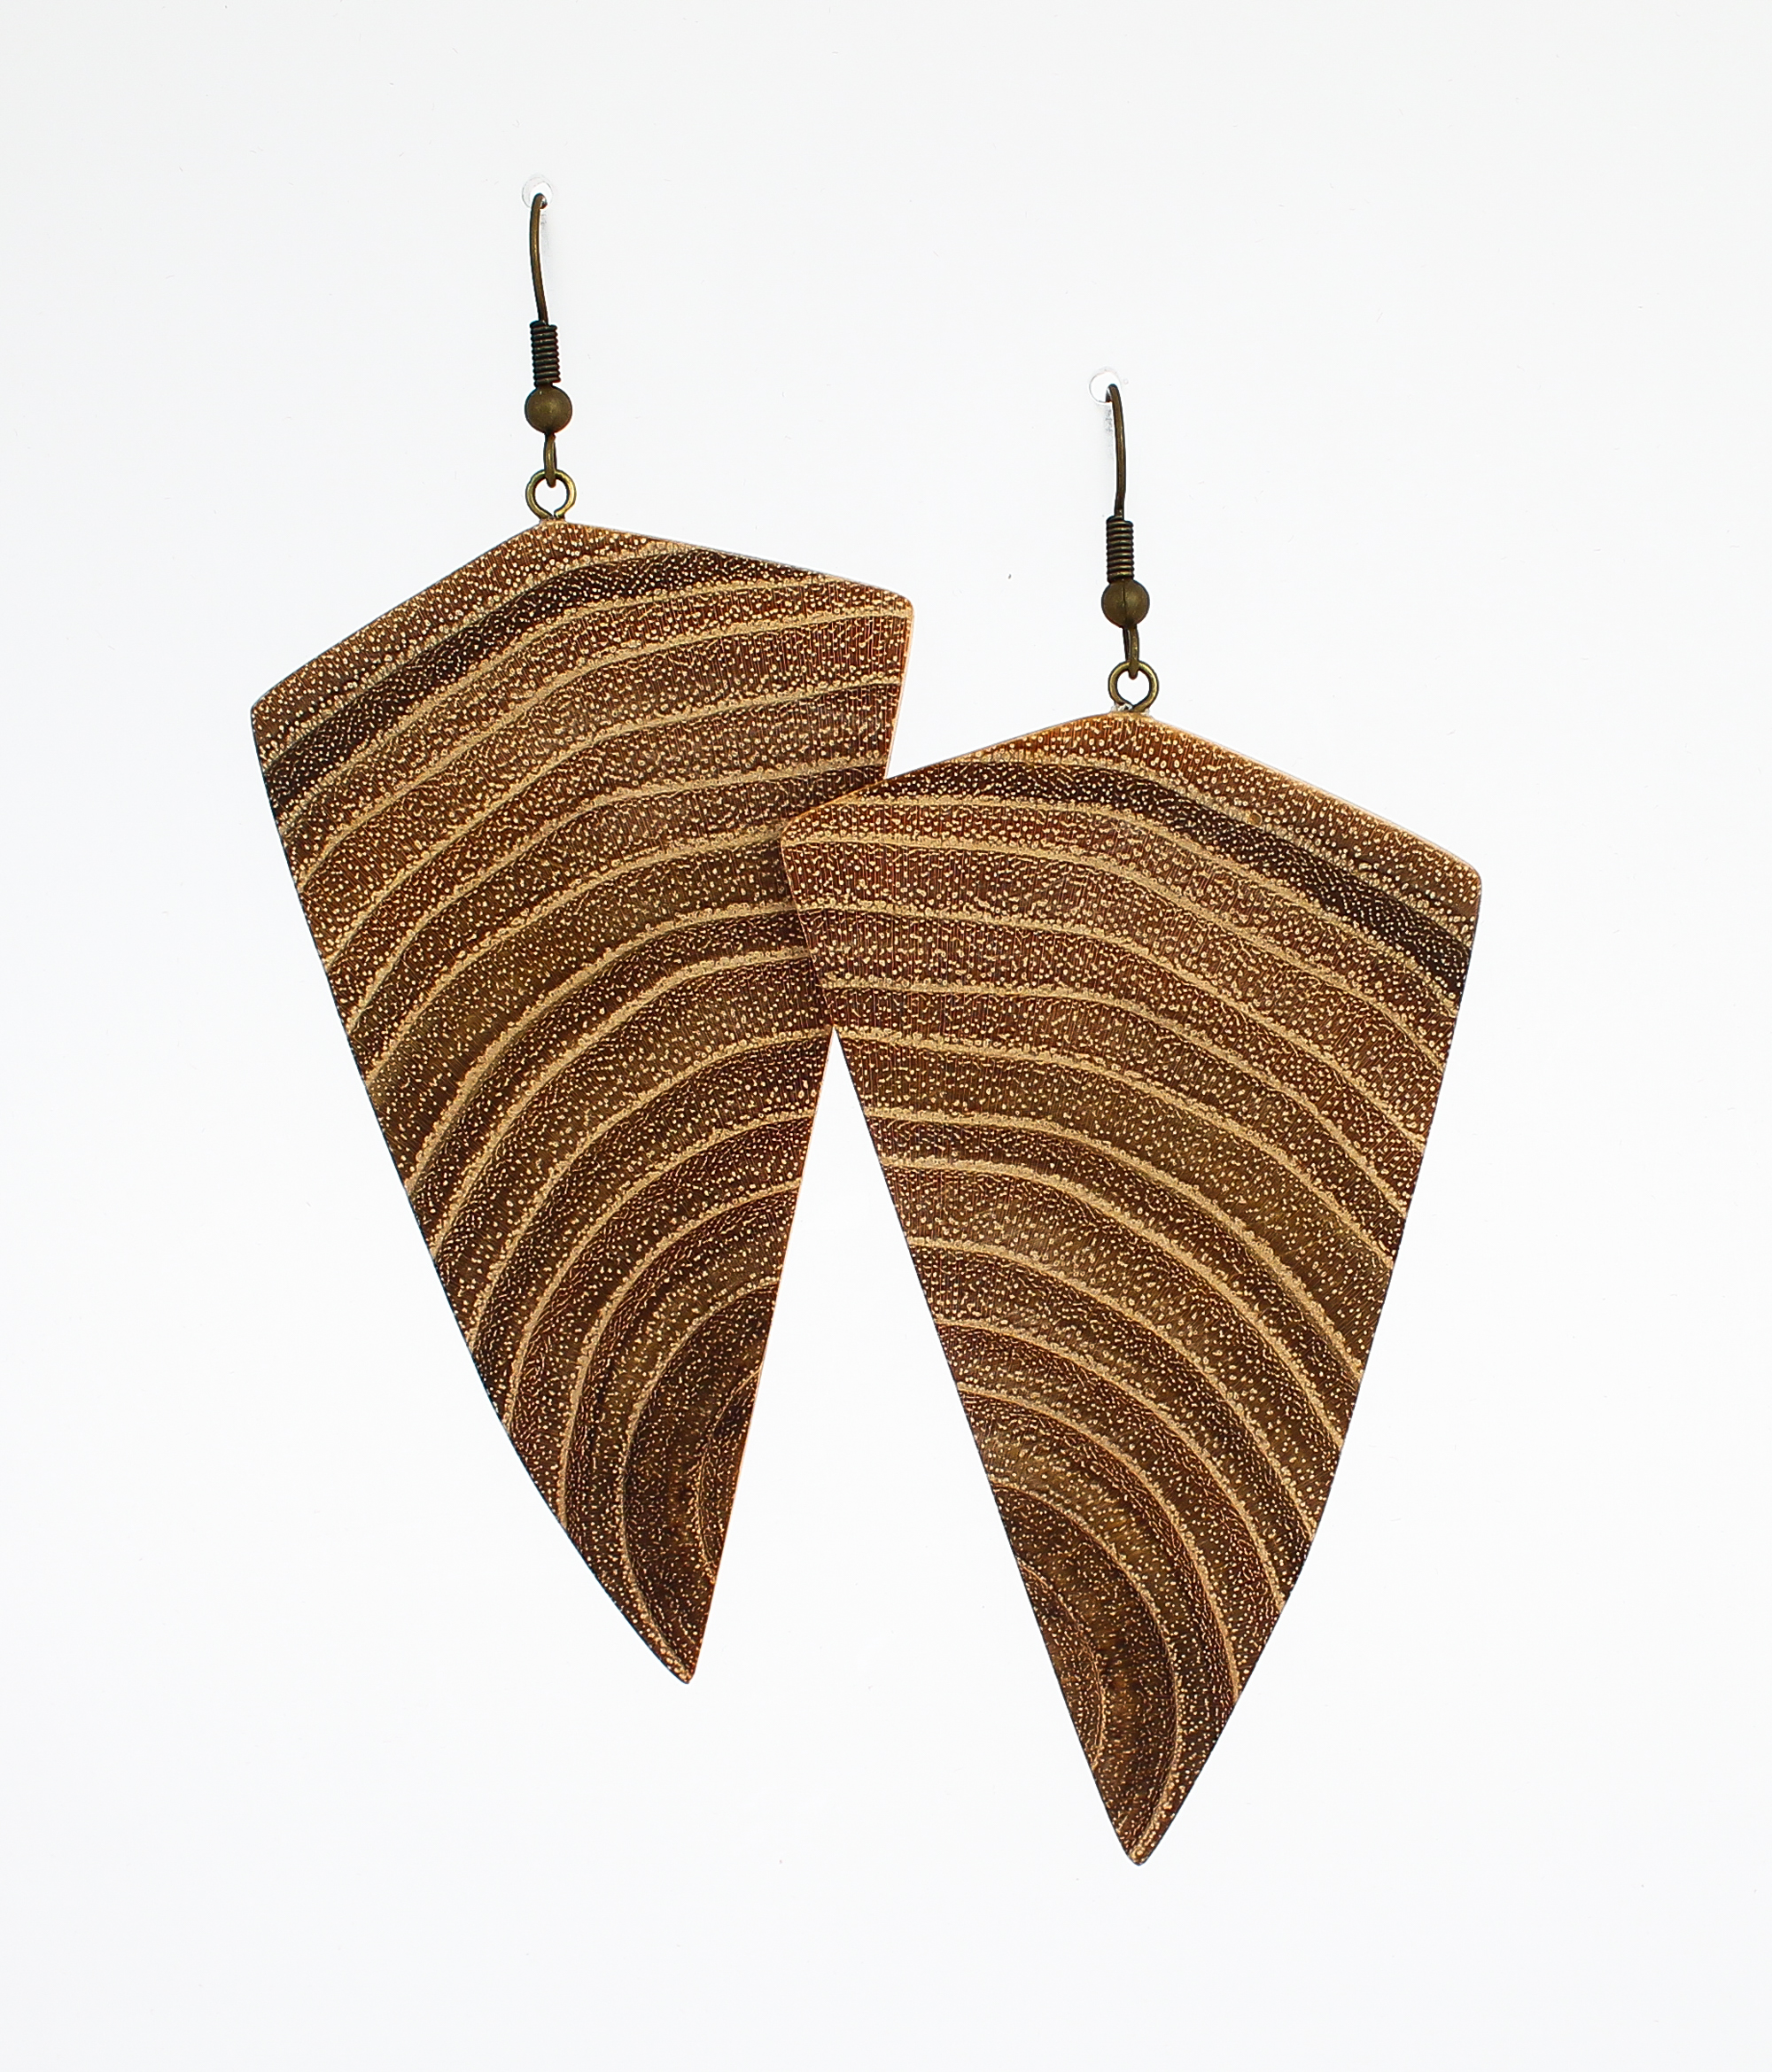 black locust earrings